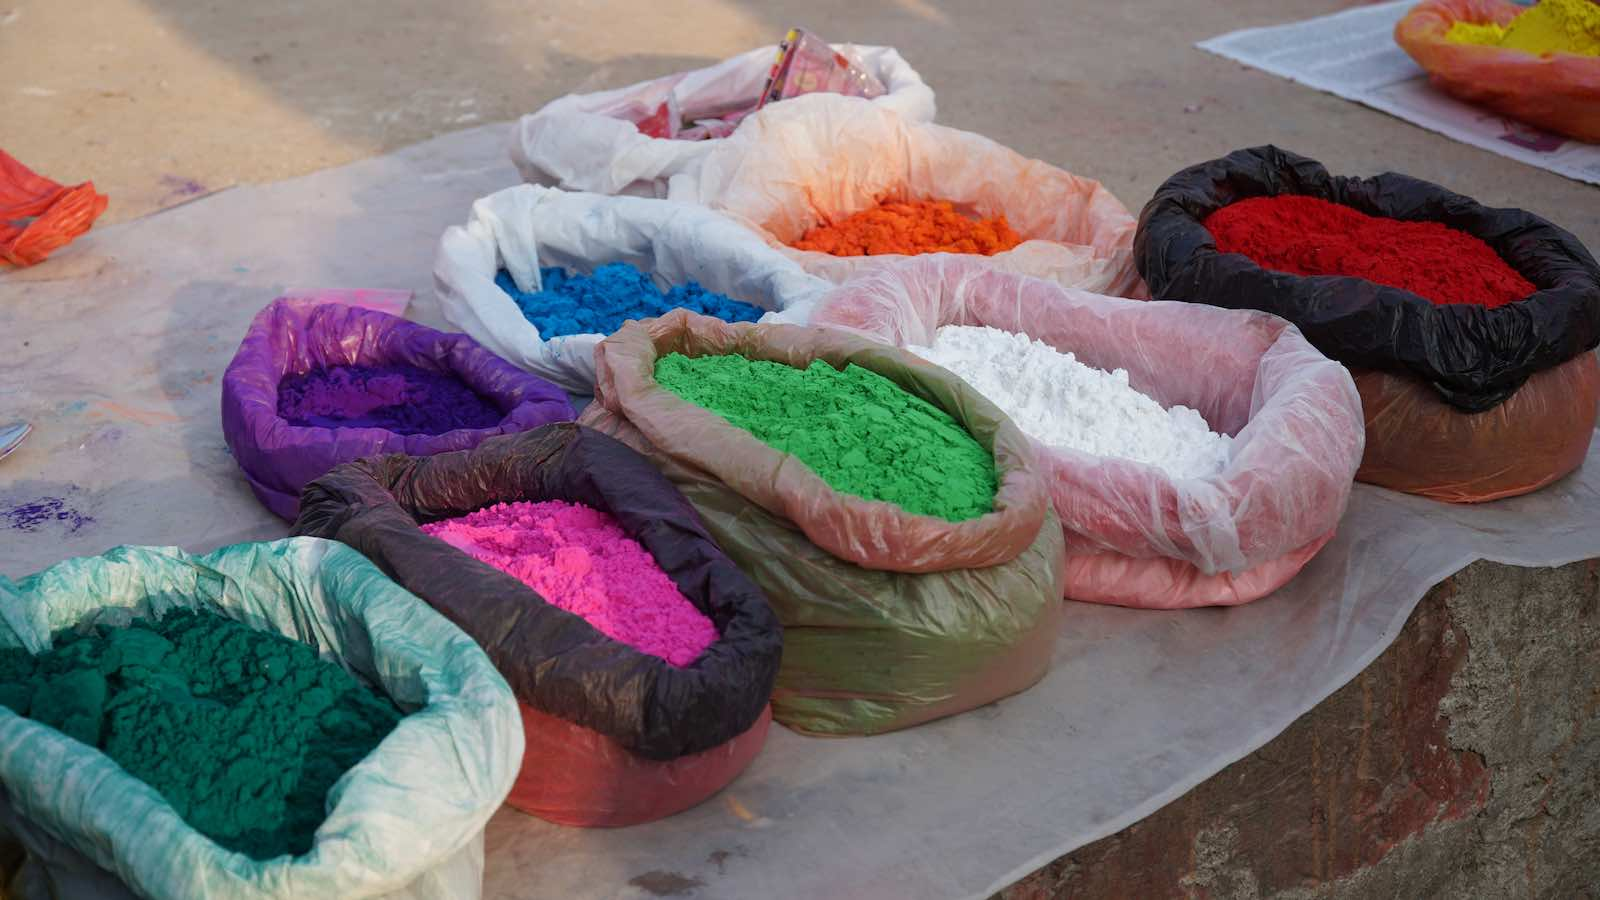 Saw a lot of people on the street selling the festive colored powders.